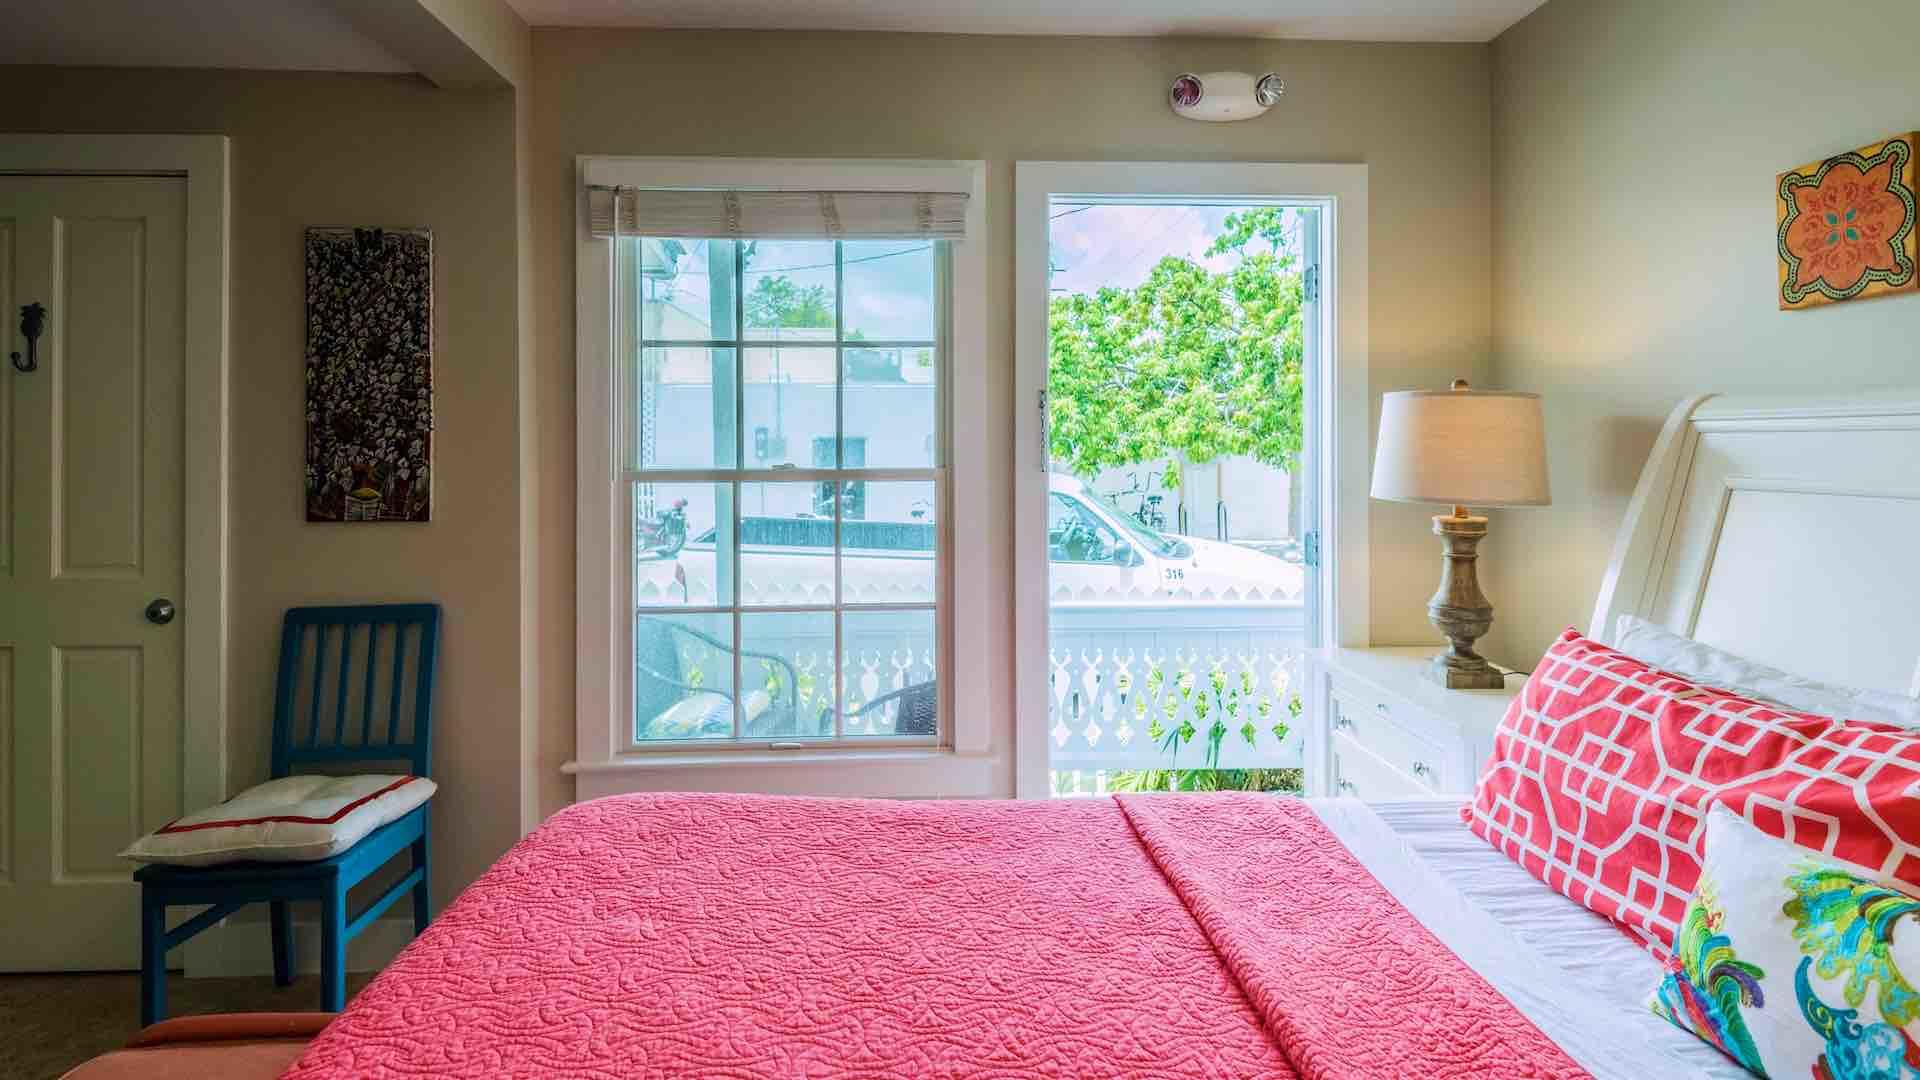 The first bedroom has a private balcony...